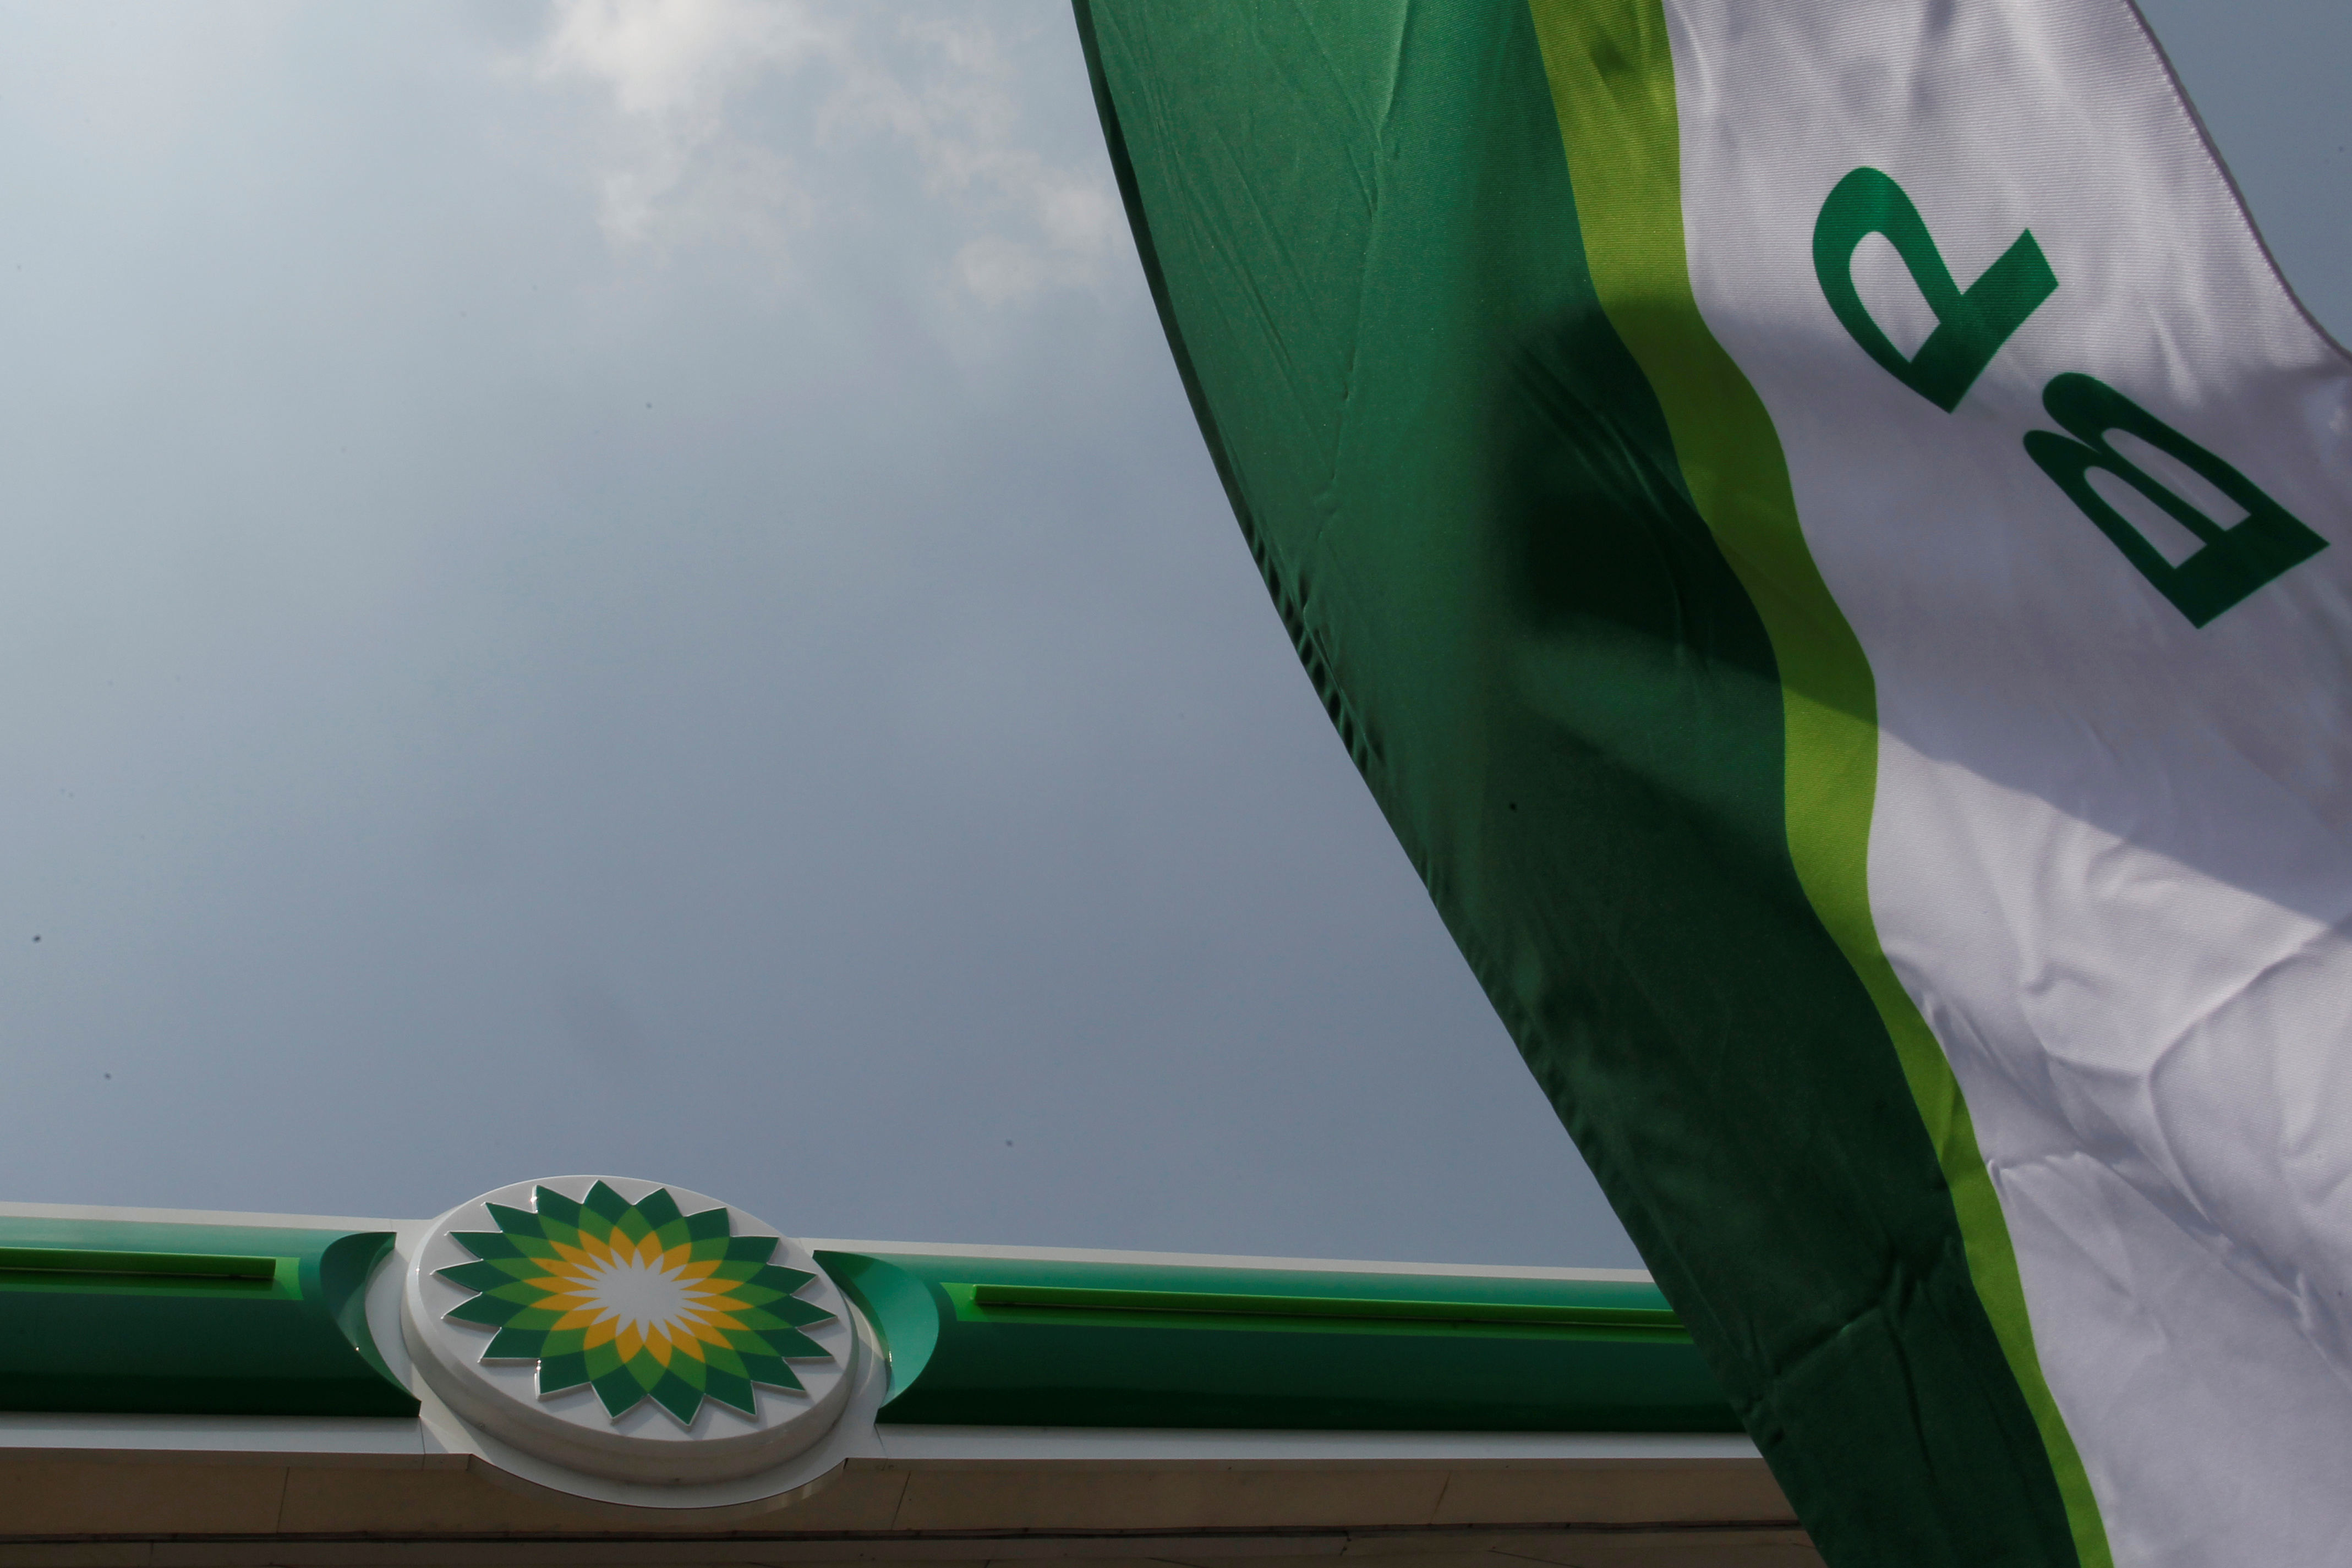 BP vende negocio global de petroquímicos por 5,000 mdd